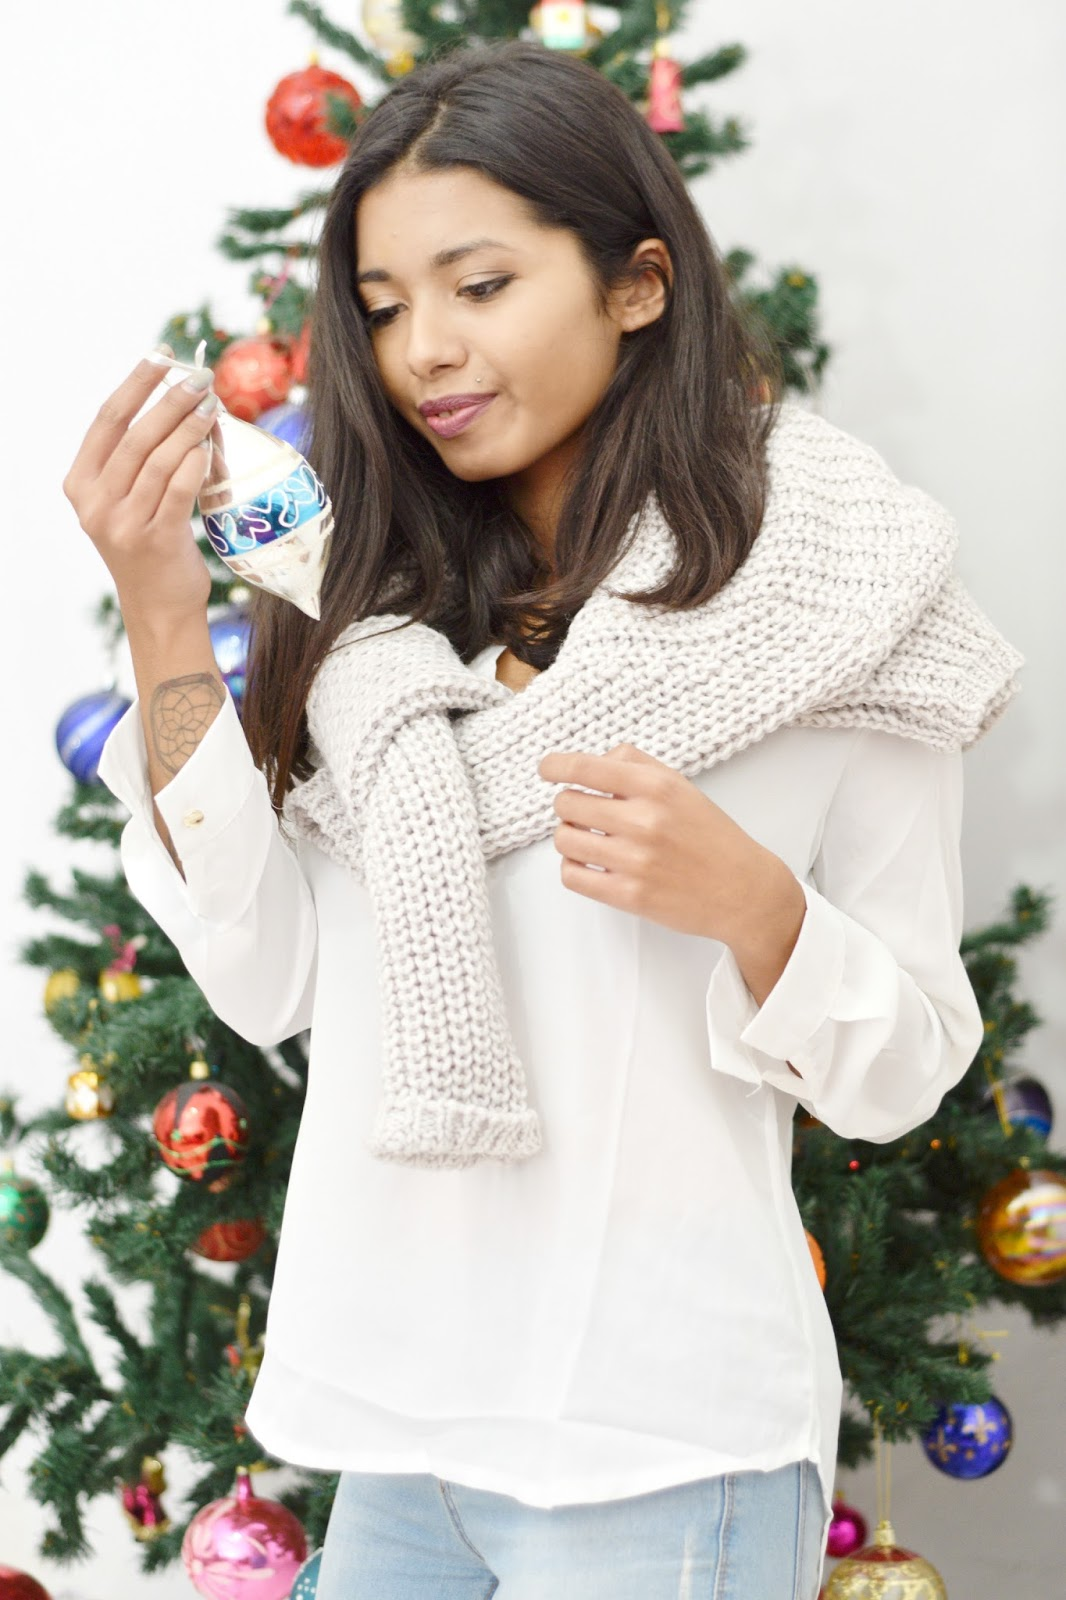 christmas tree decoration gray sweater outfit